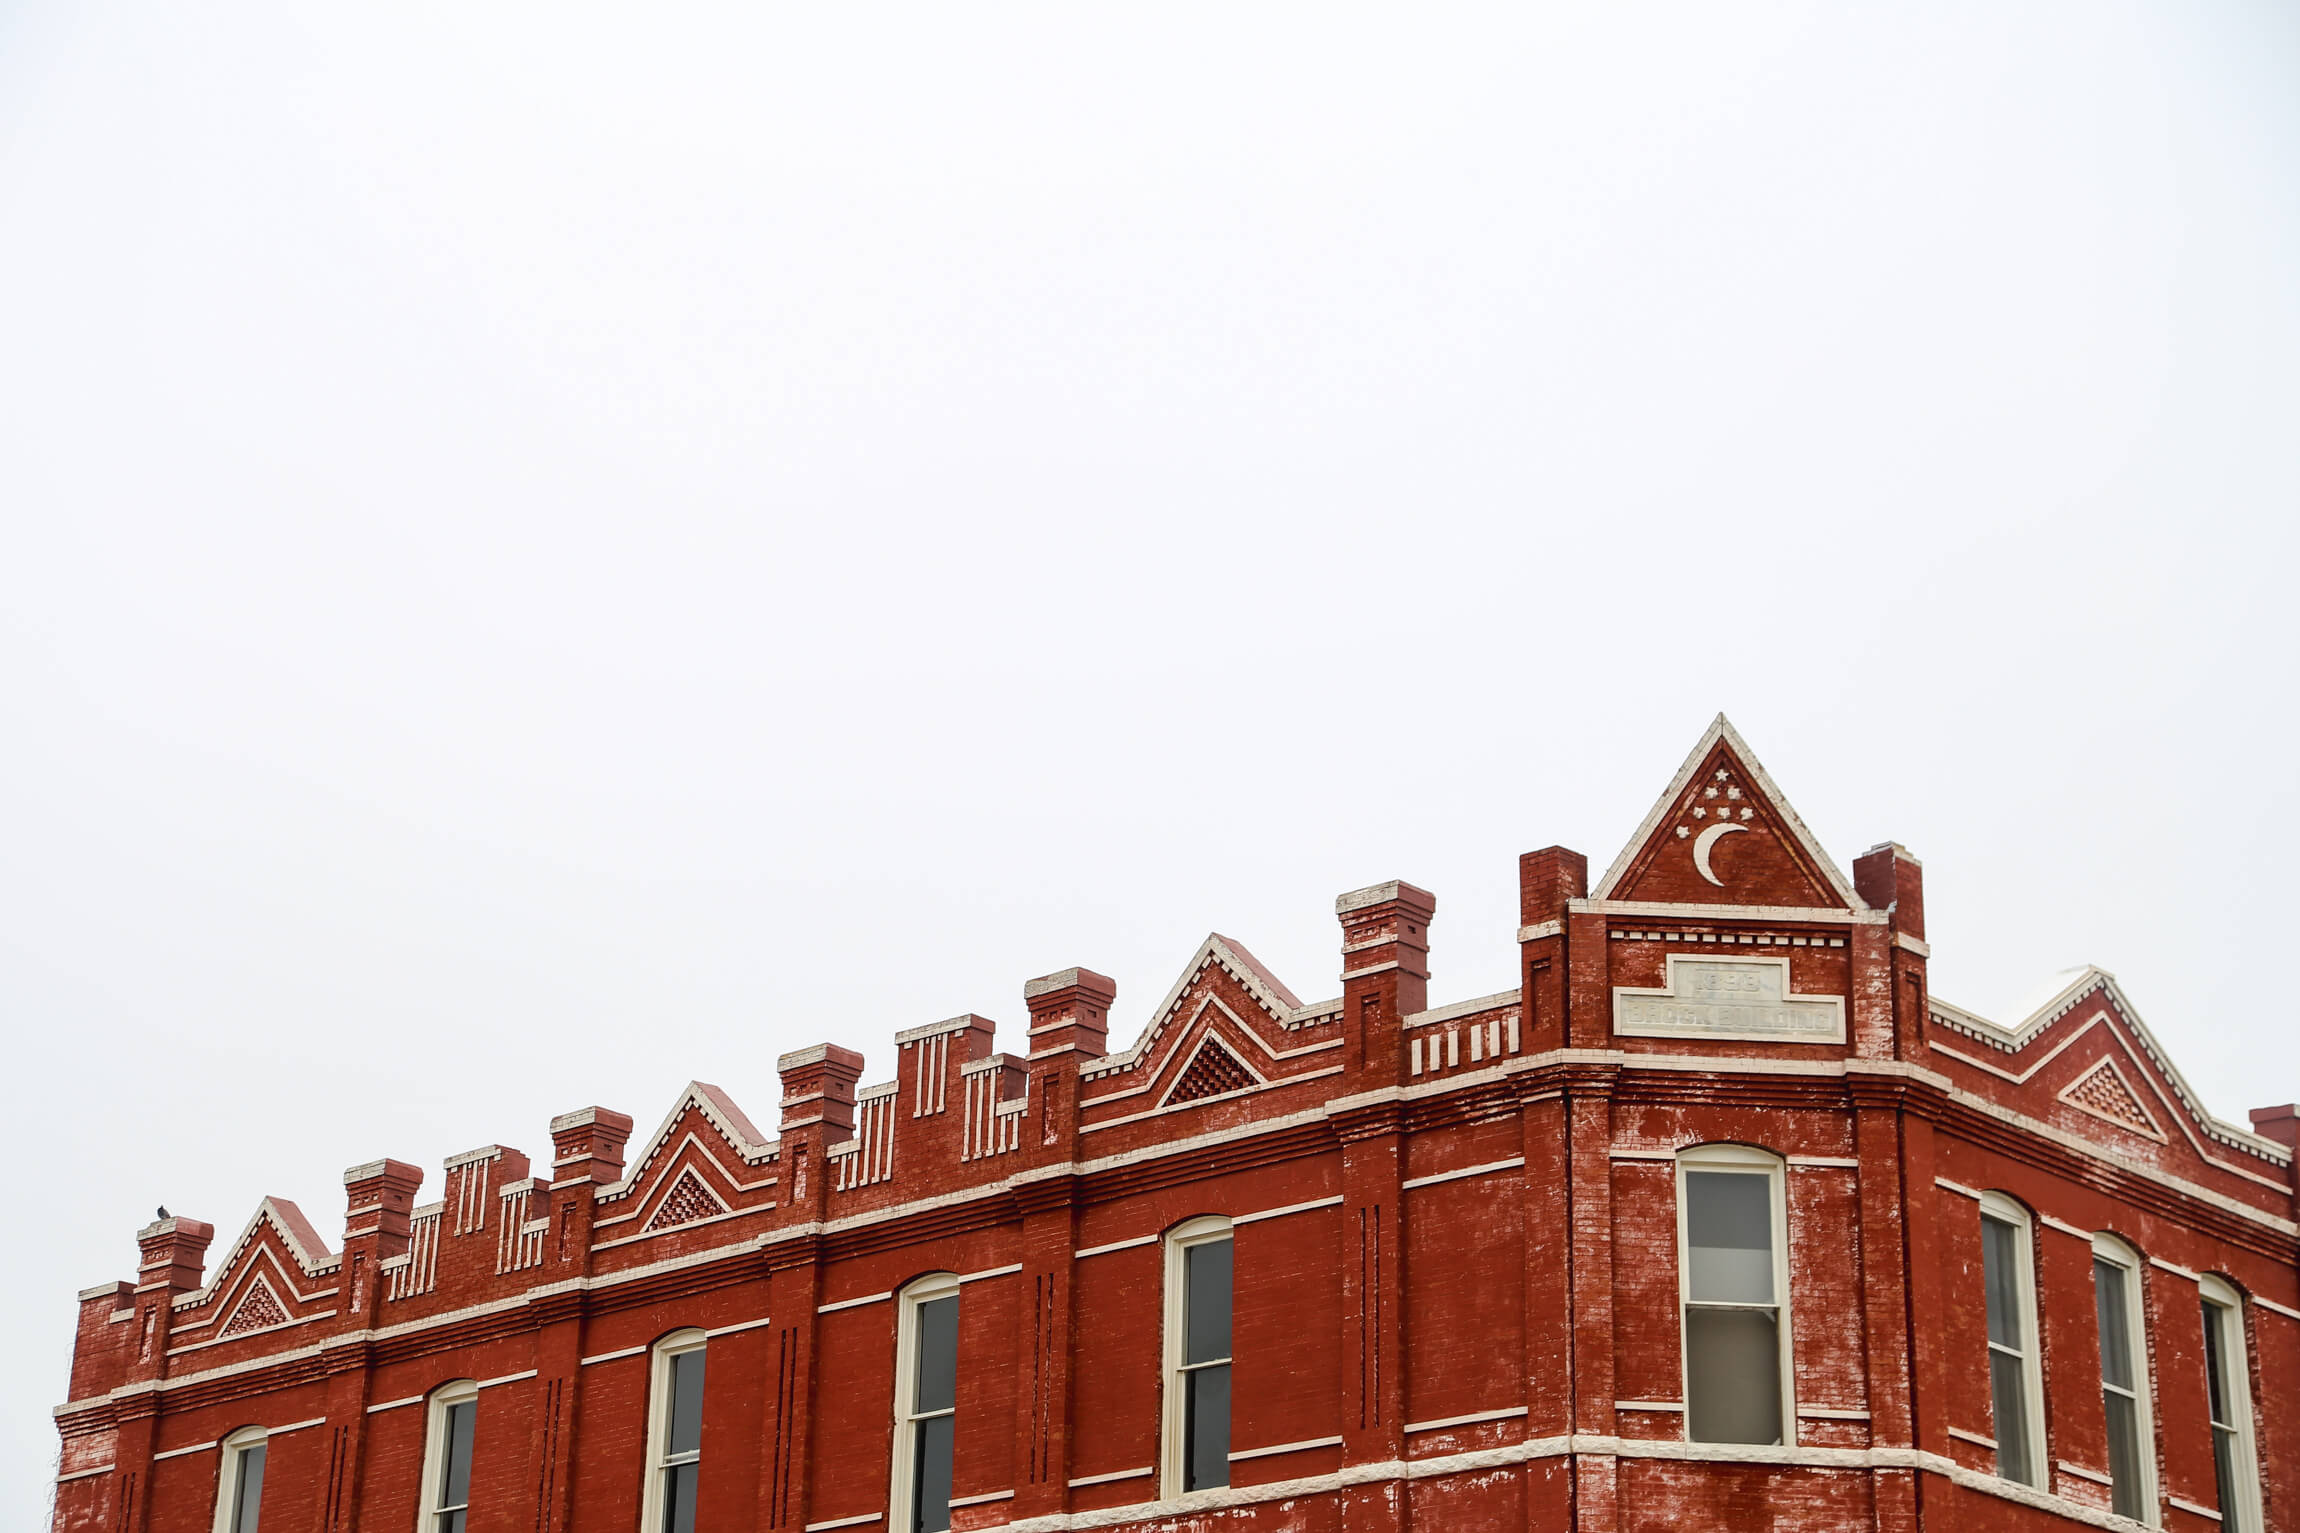 A red brick building and a white sky